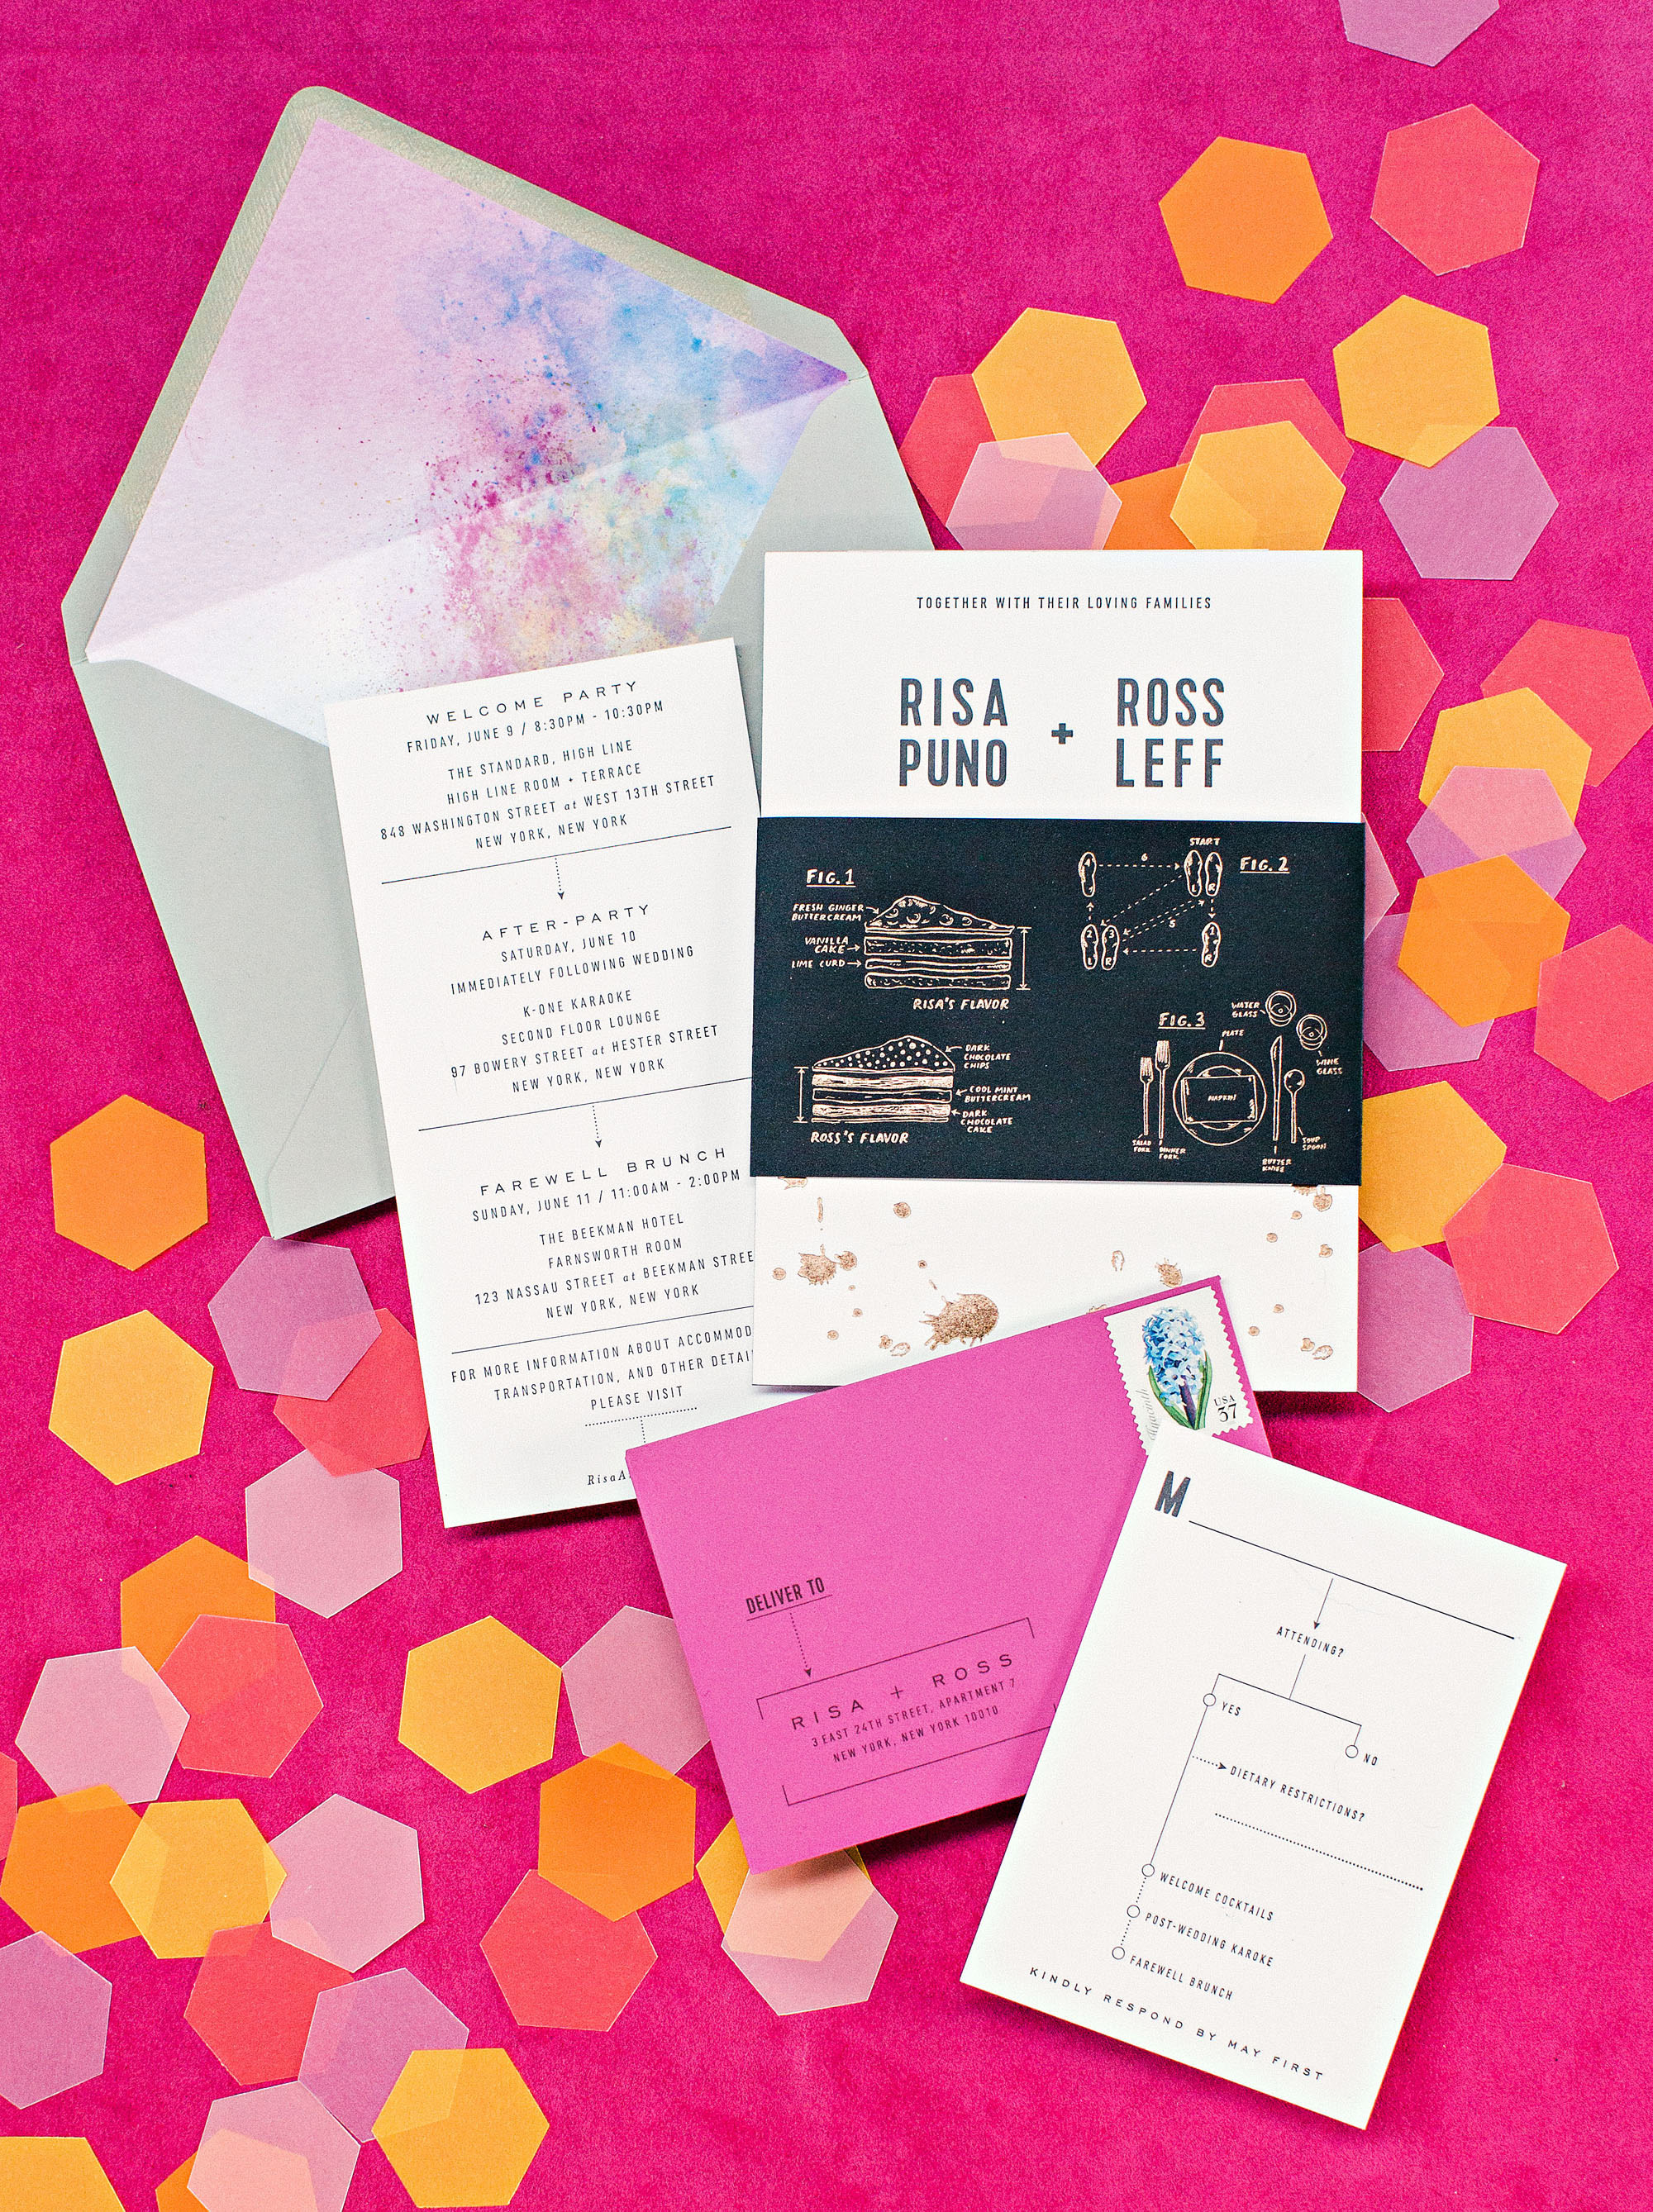 risa ross wedding brooklyn new york stationery suite